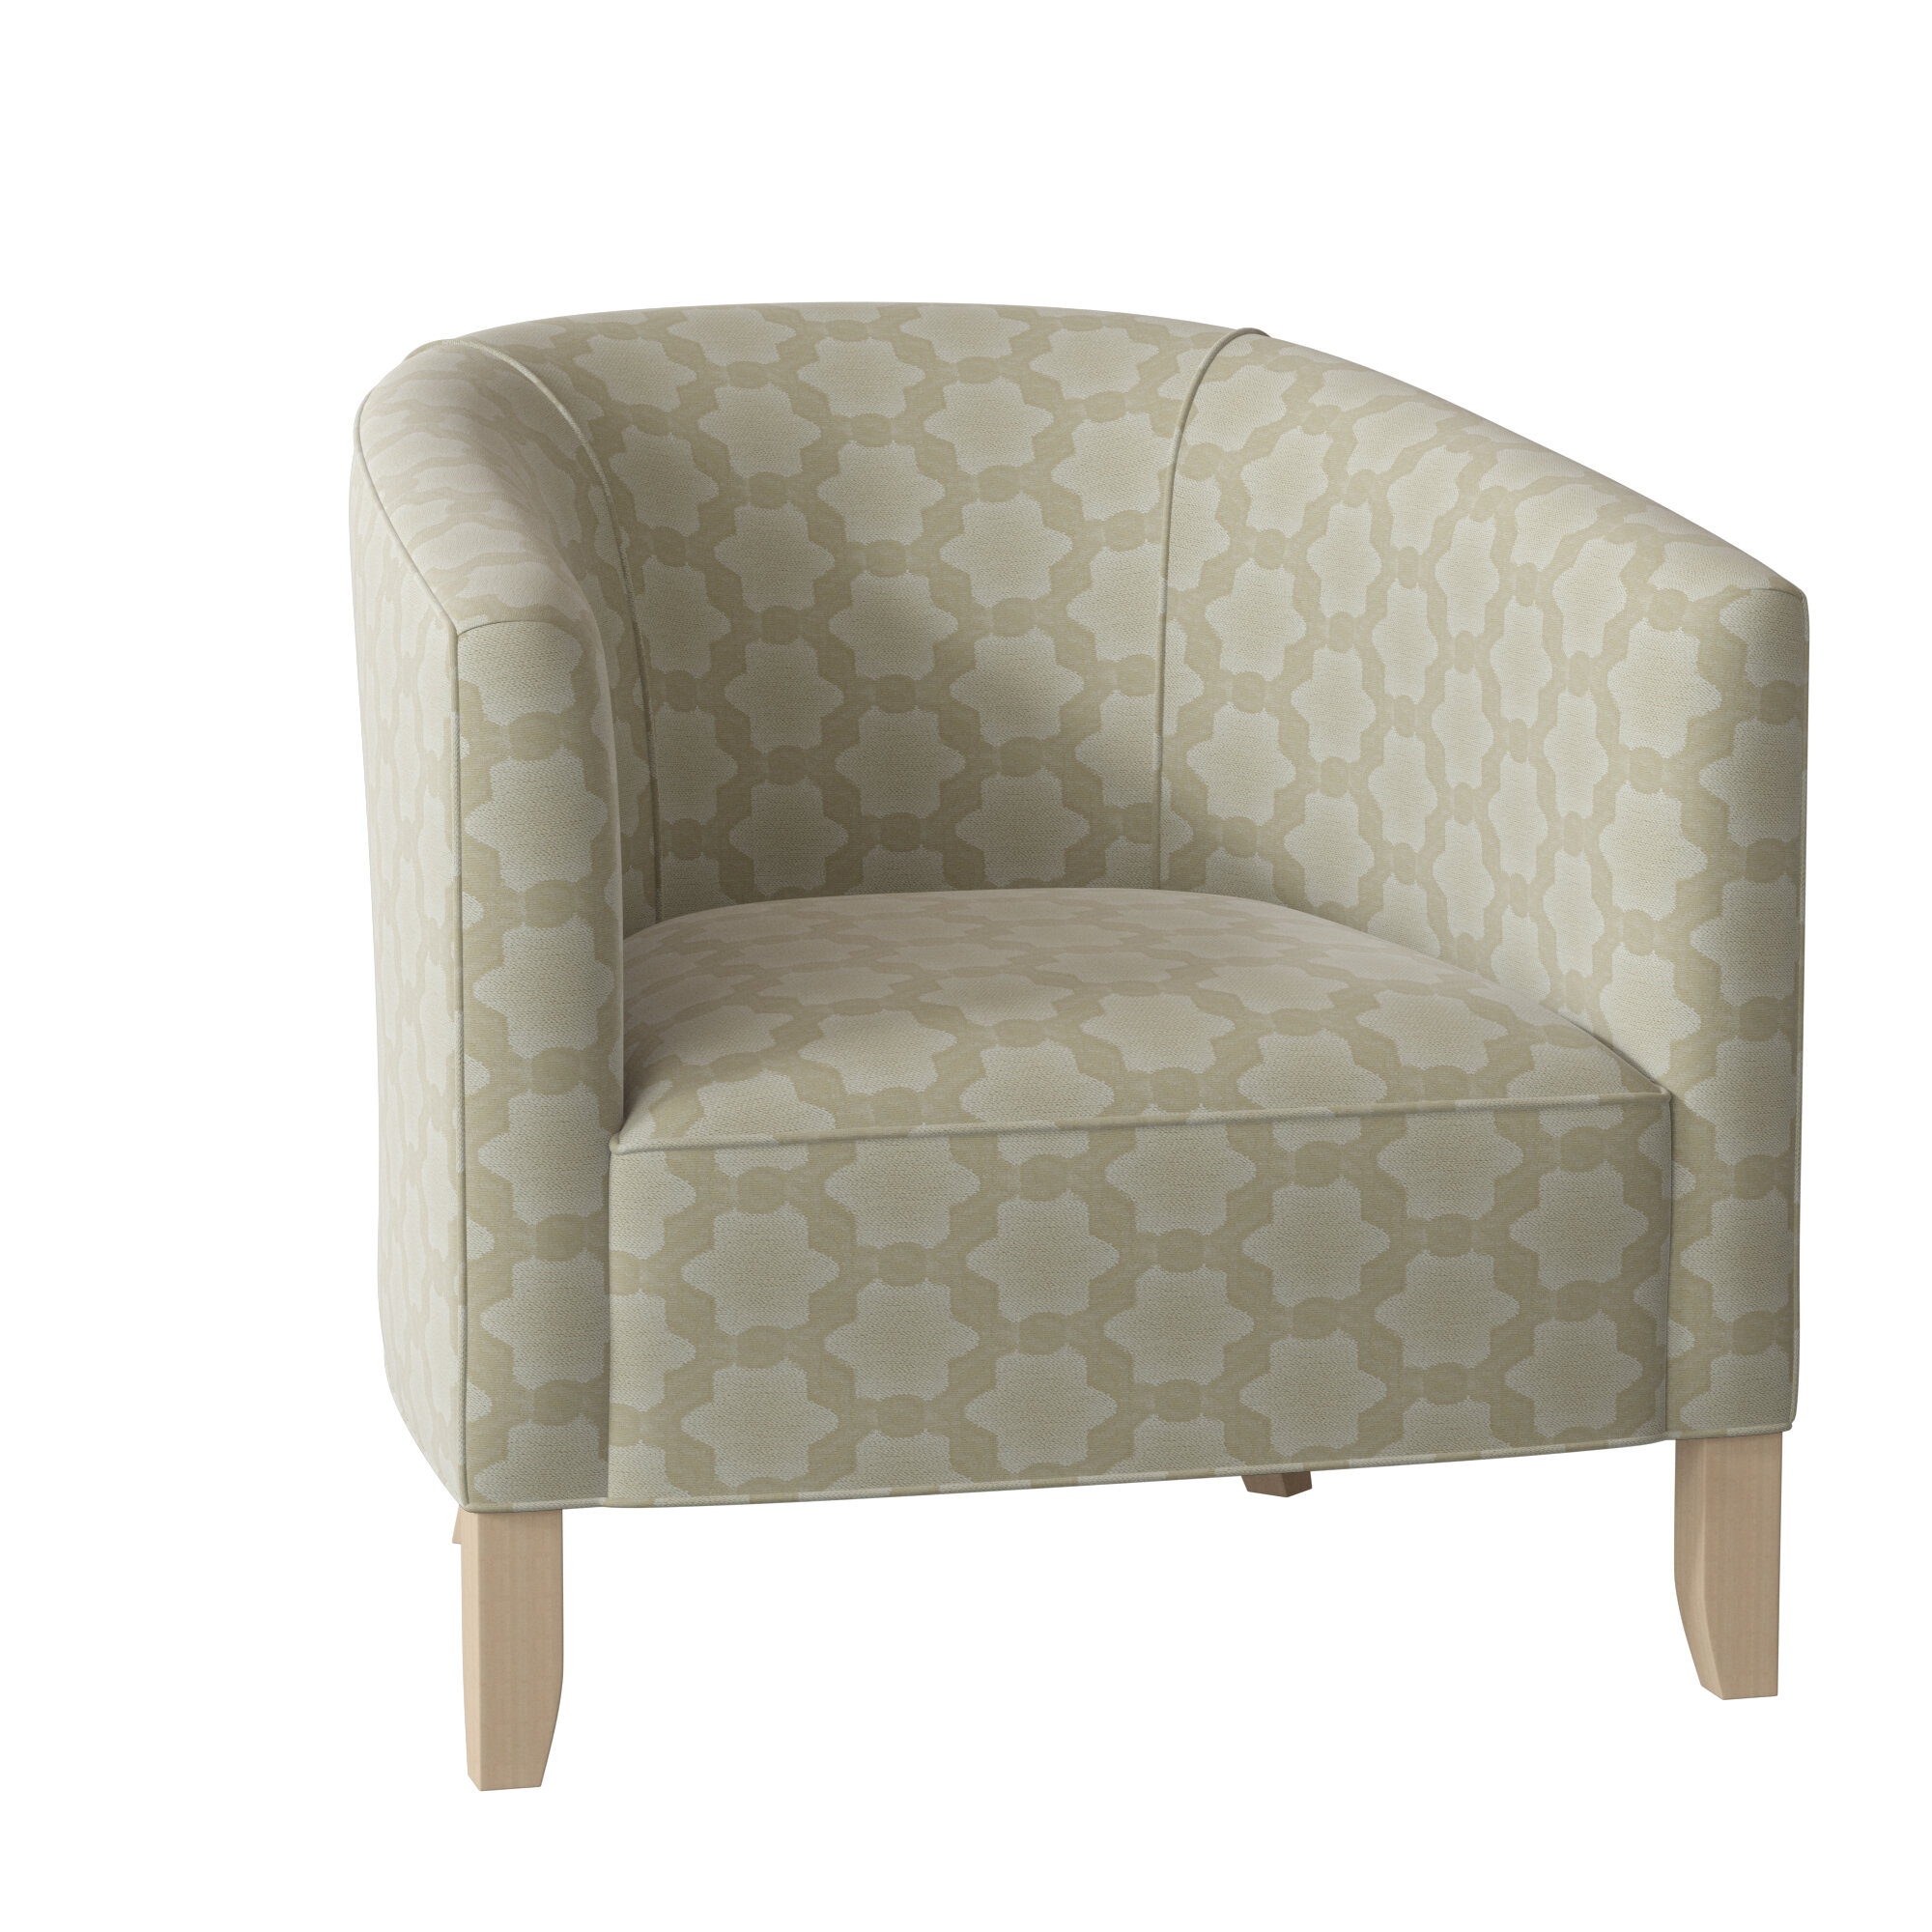 Barrel Yellow Accent Chairs You'Ll Love In 2021 | Wayfair For Coomer Faux Leather Barrel Chairs (View 14 of 15)